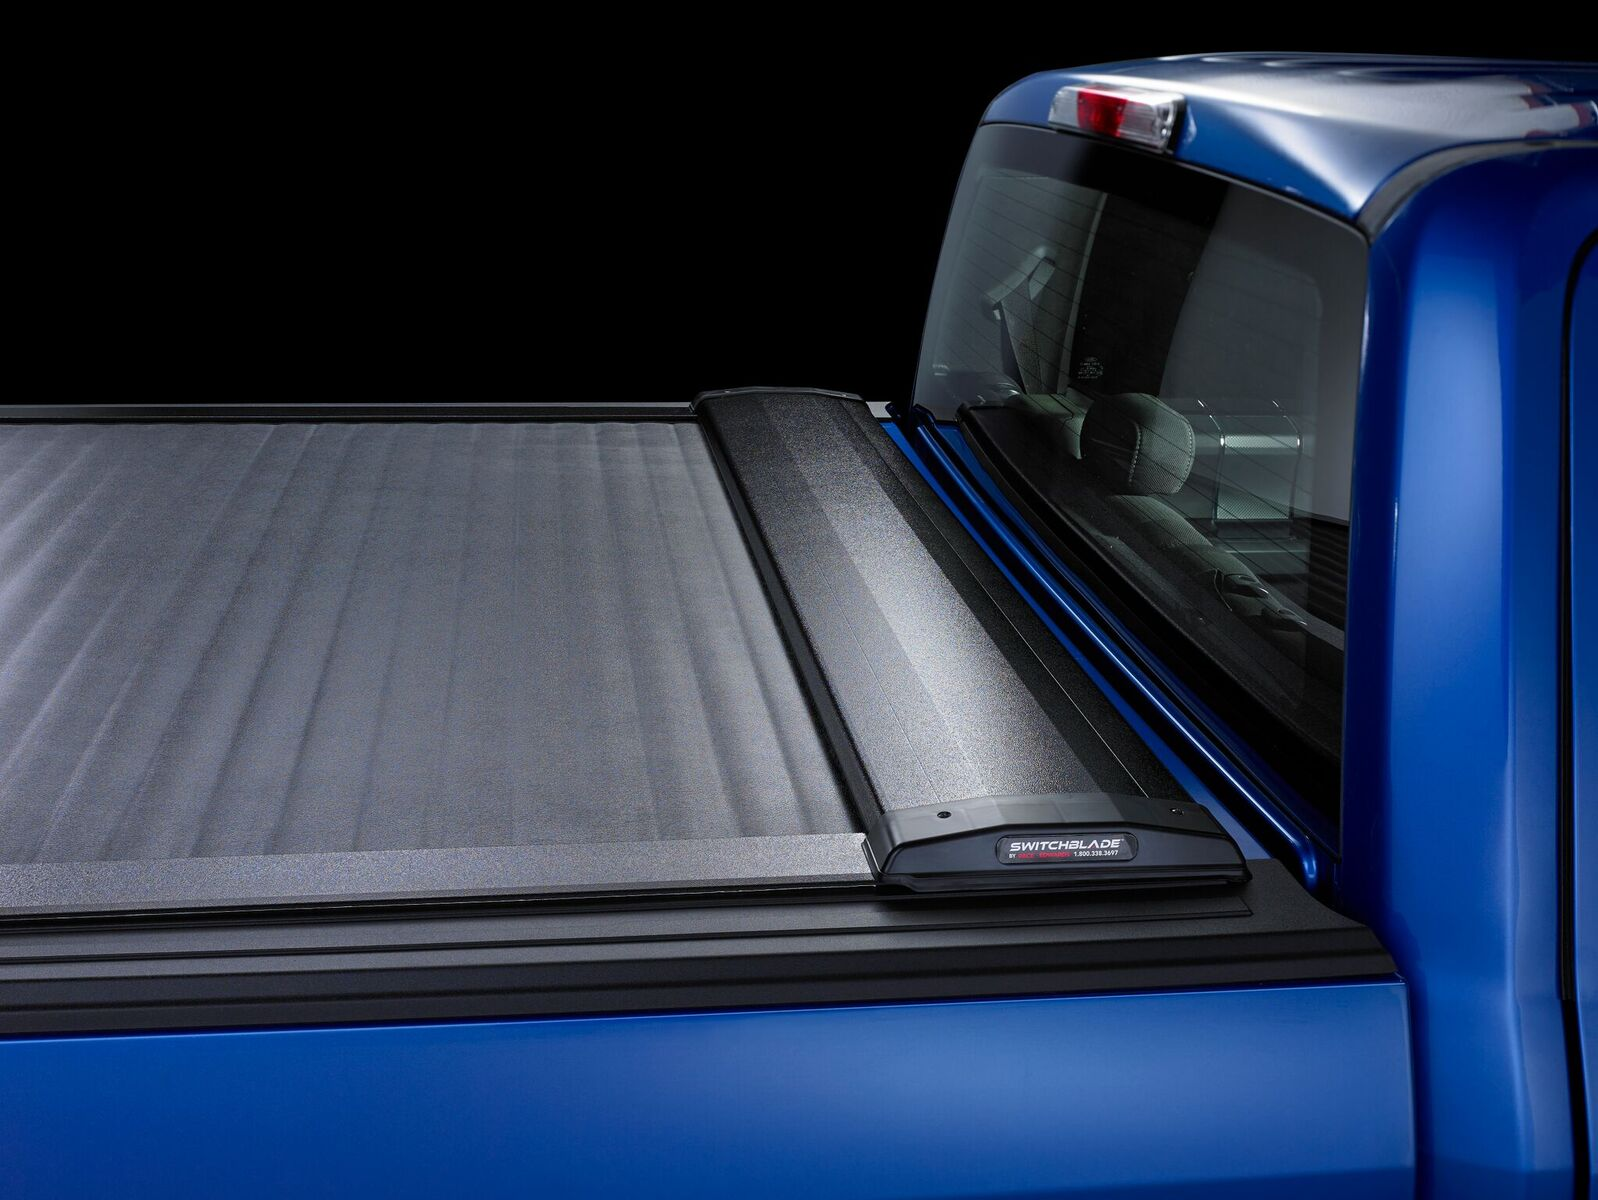 Sw5050 Pace Edwards Tonneau Cover Rail For Use With Pace Edwards Switchblade Cover